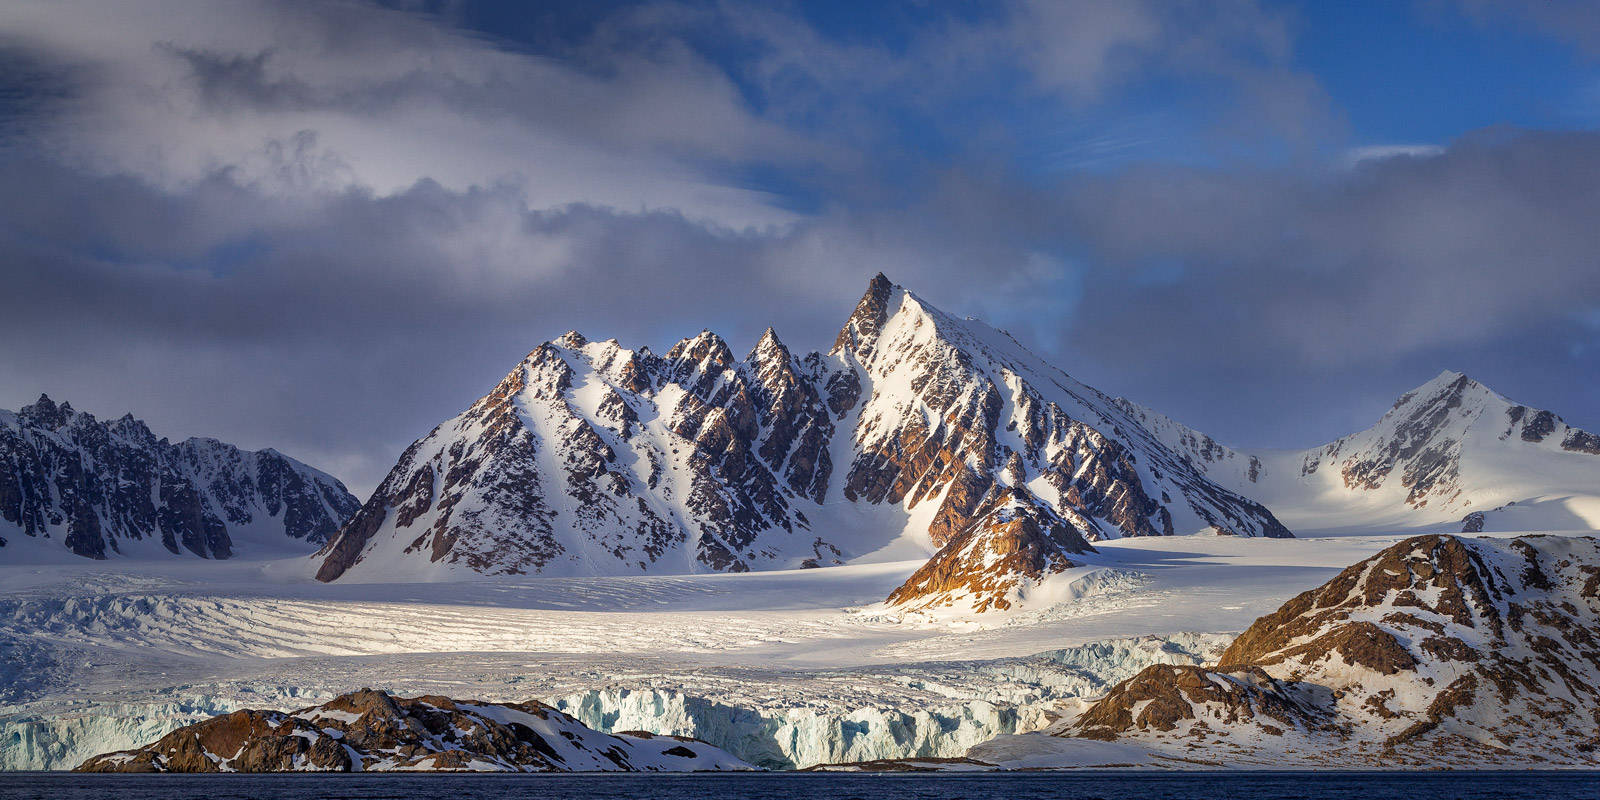 Norway, Spitsbergen, Mountain, limited edition, photograph, fine art, landscape, photo